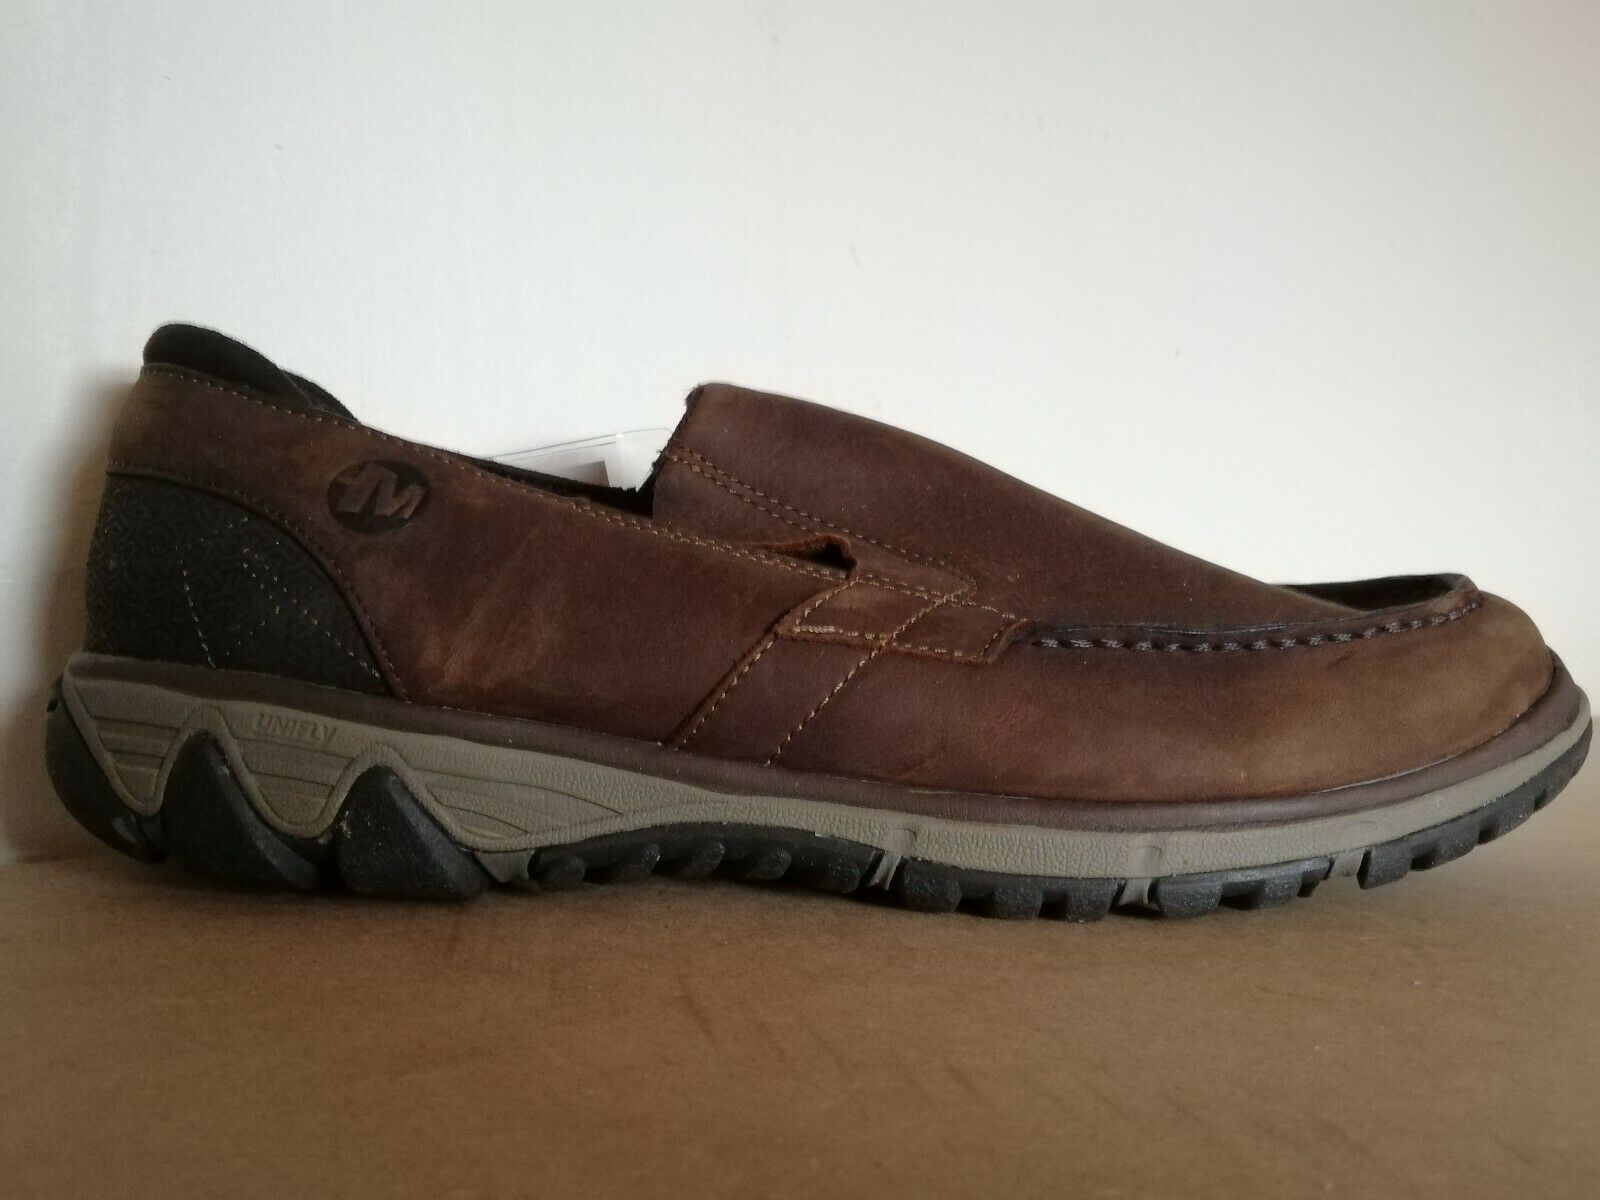 MERRELL ALL OUT BLAZER MOC MENS WALKING CASUAL LEATHER schuhe braun UK 8.5 US 9